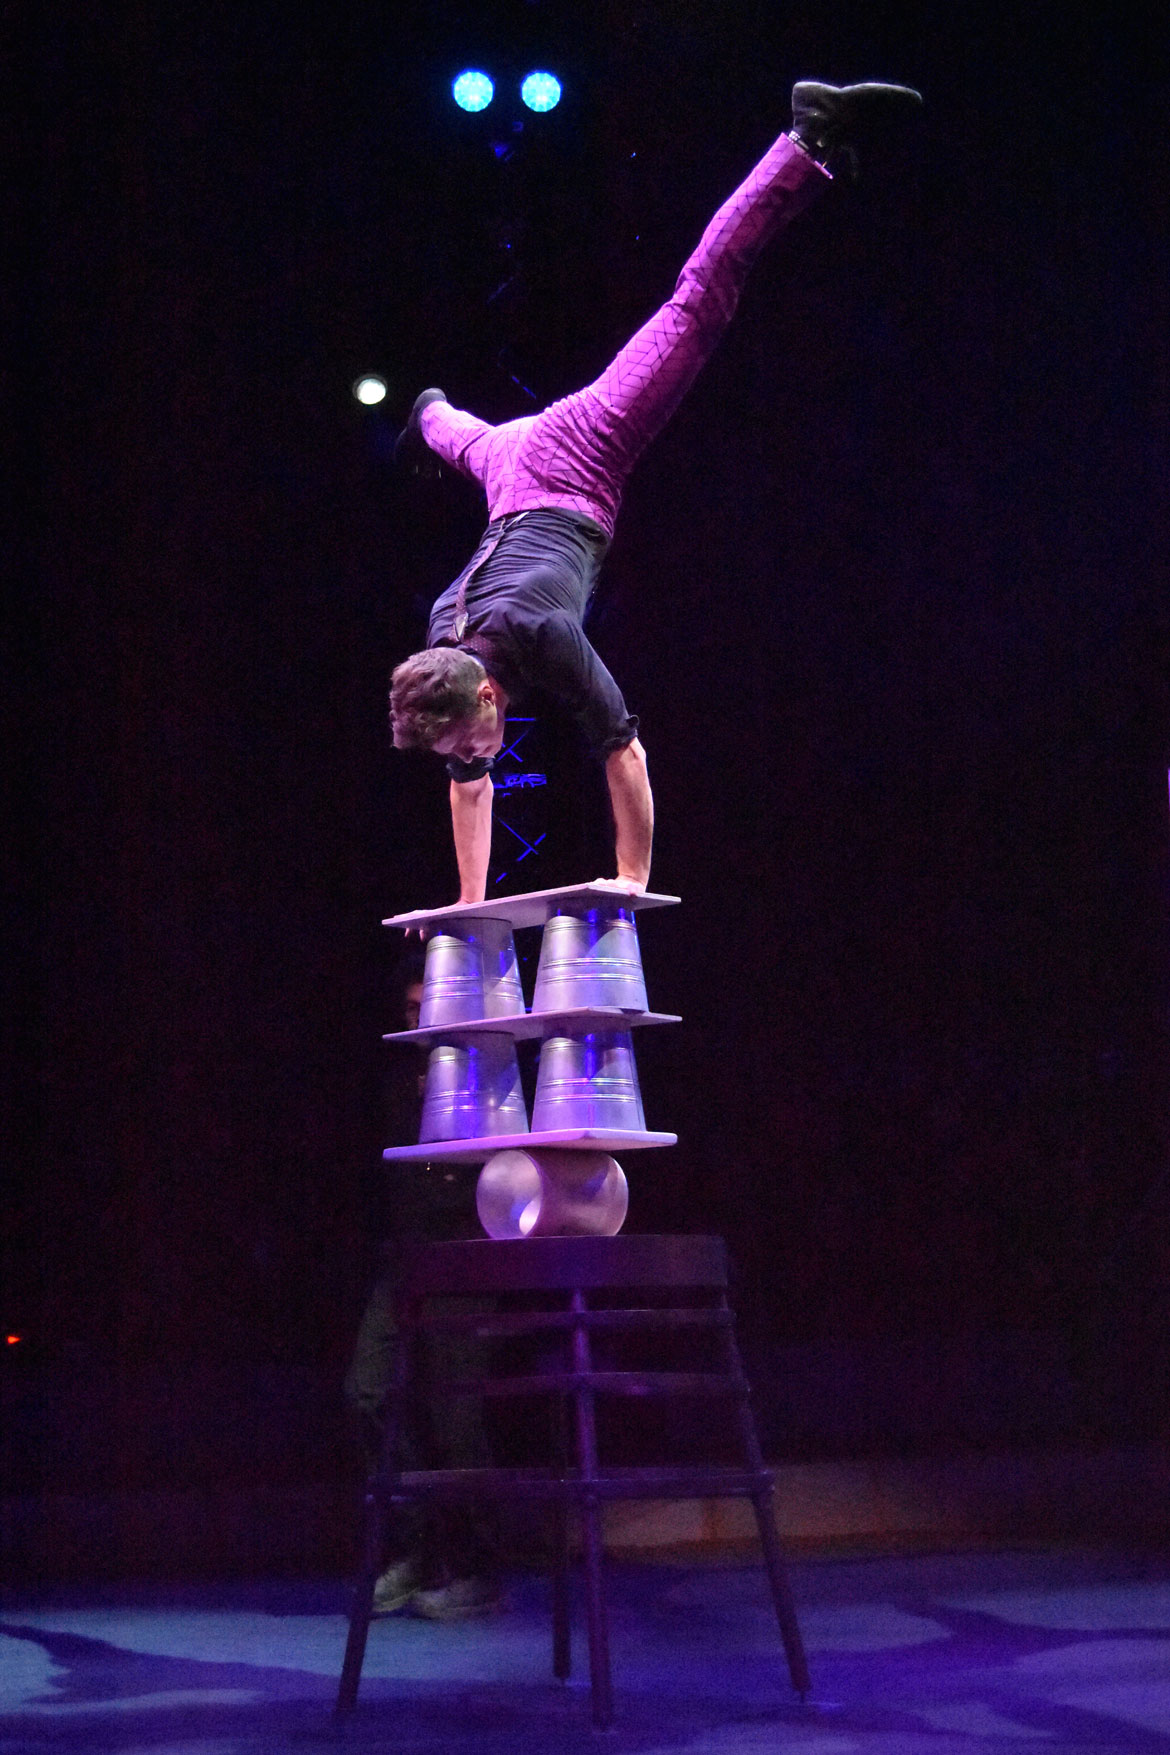 Jan Damm, who grew up in Maine, performs his Rola Bola (balance board) act during the Big Apple Circus. (Greg Cook)